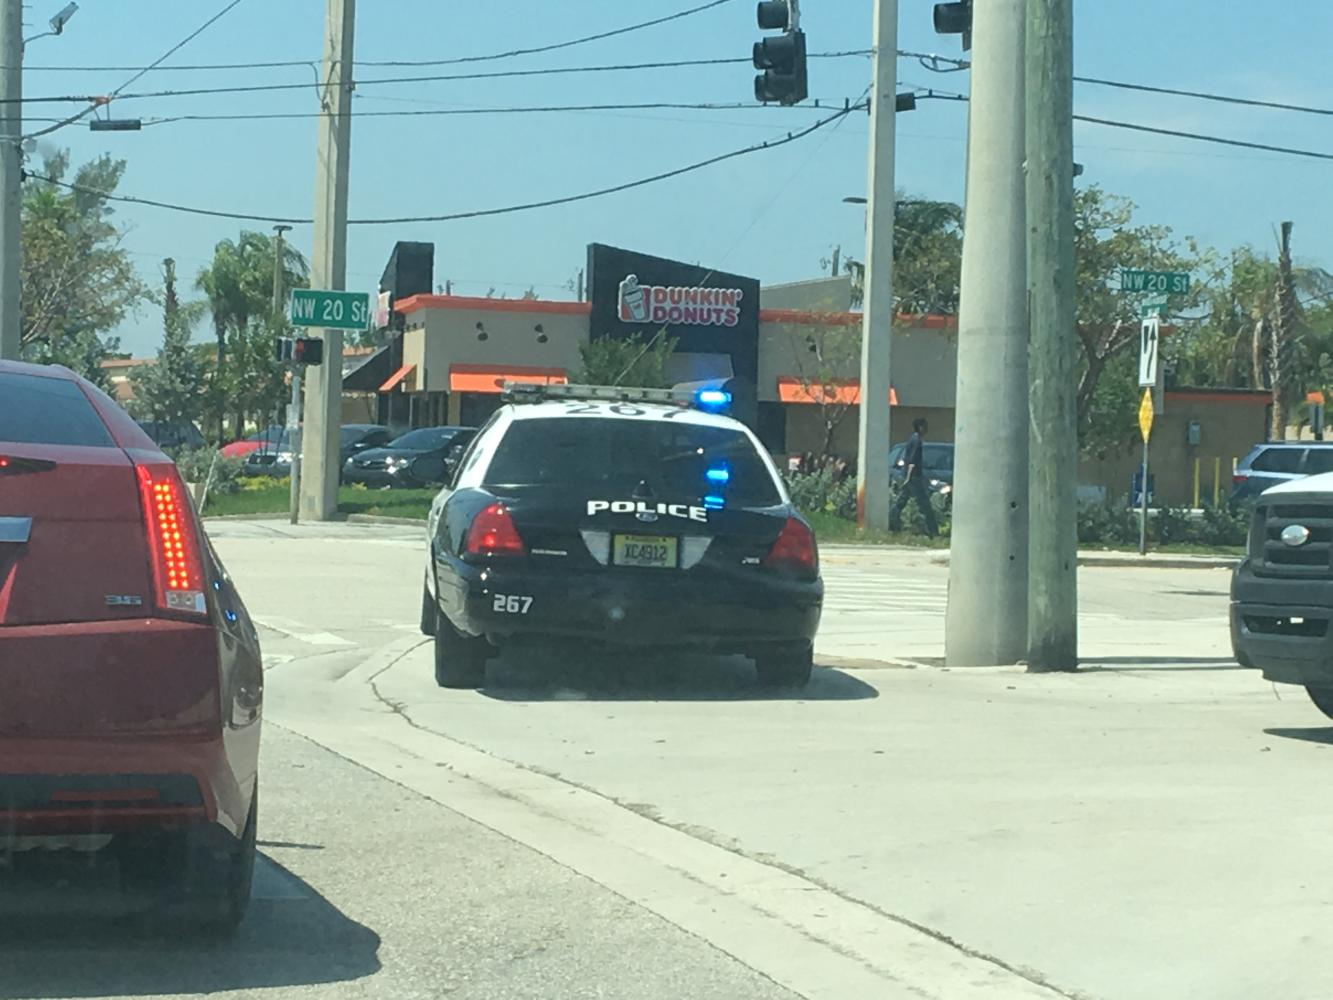 A Boca Raton police cruiser sits at the intersection of 20th and 2nd Street Friday while the department looks for a suspect in the area. Joe Pye | News Editor